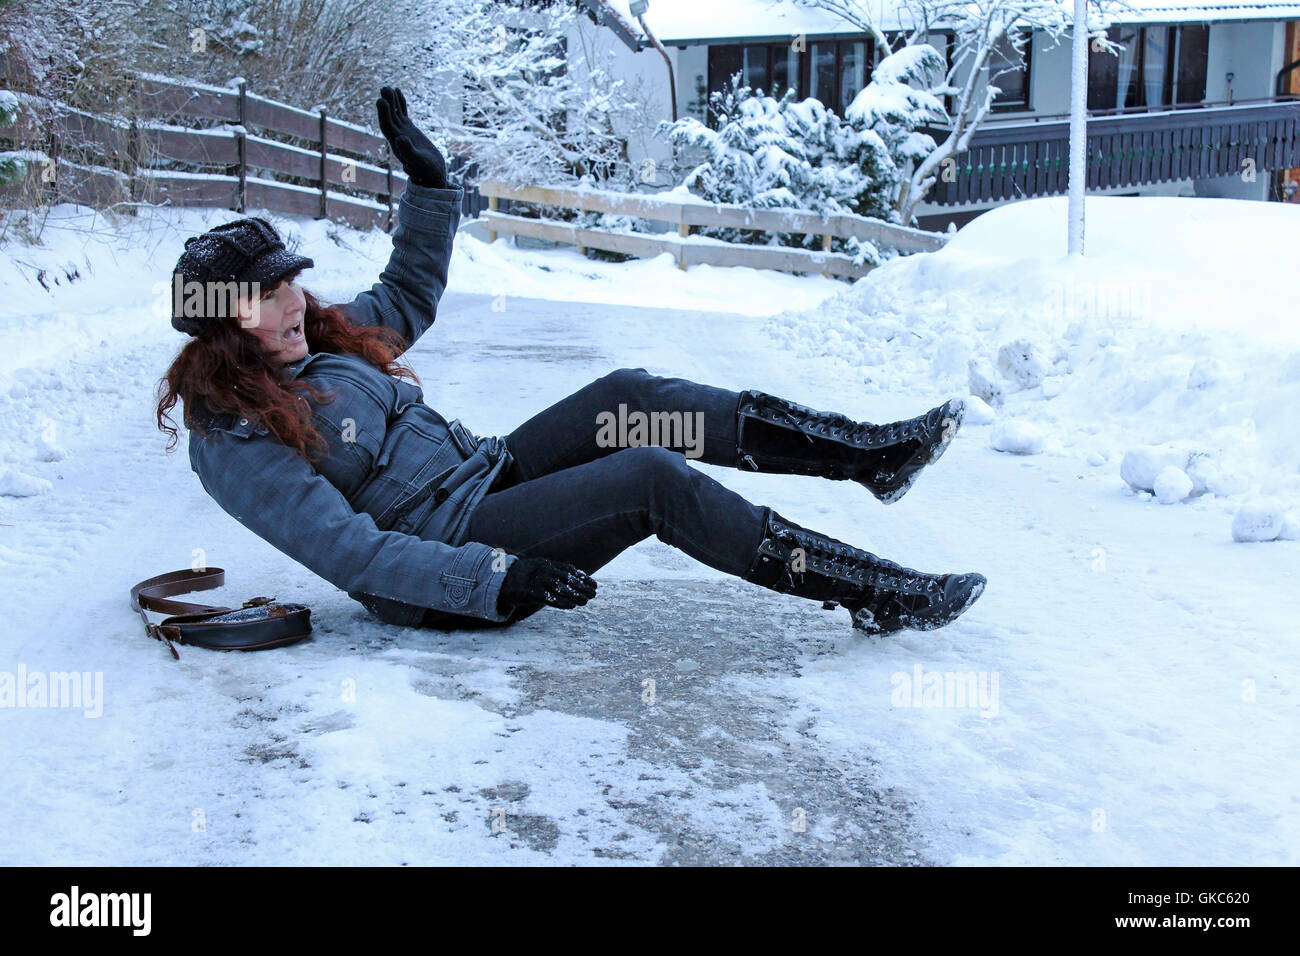 slipping in packed snow and ice on the roads - Stock Image